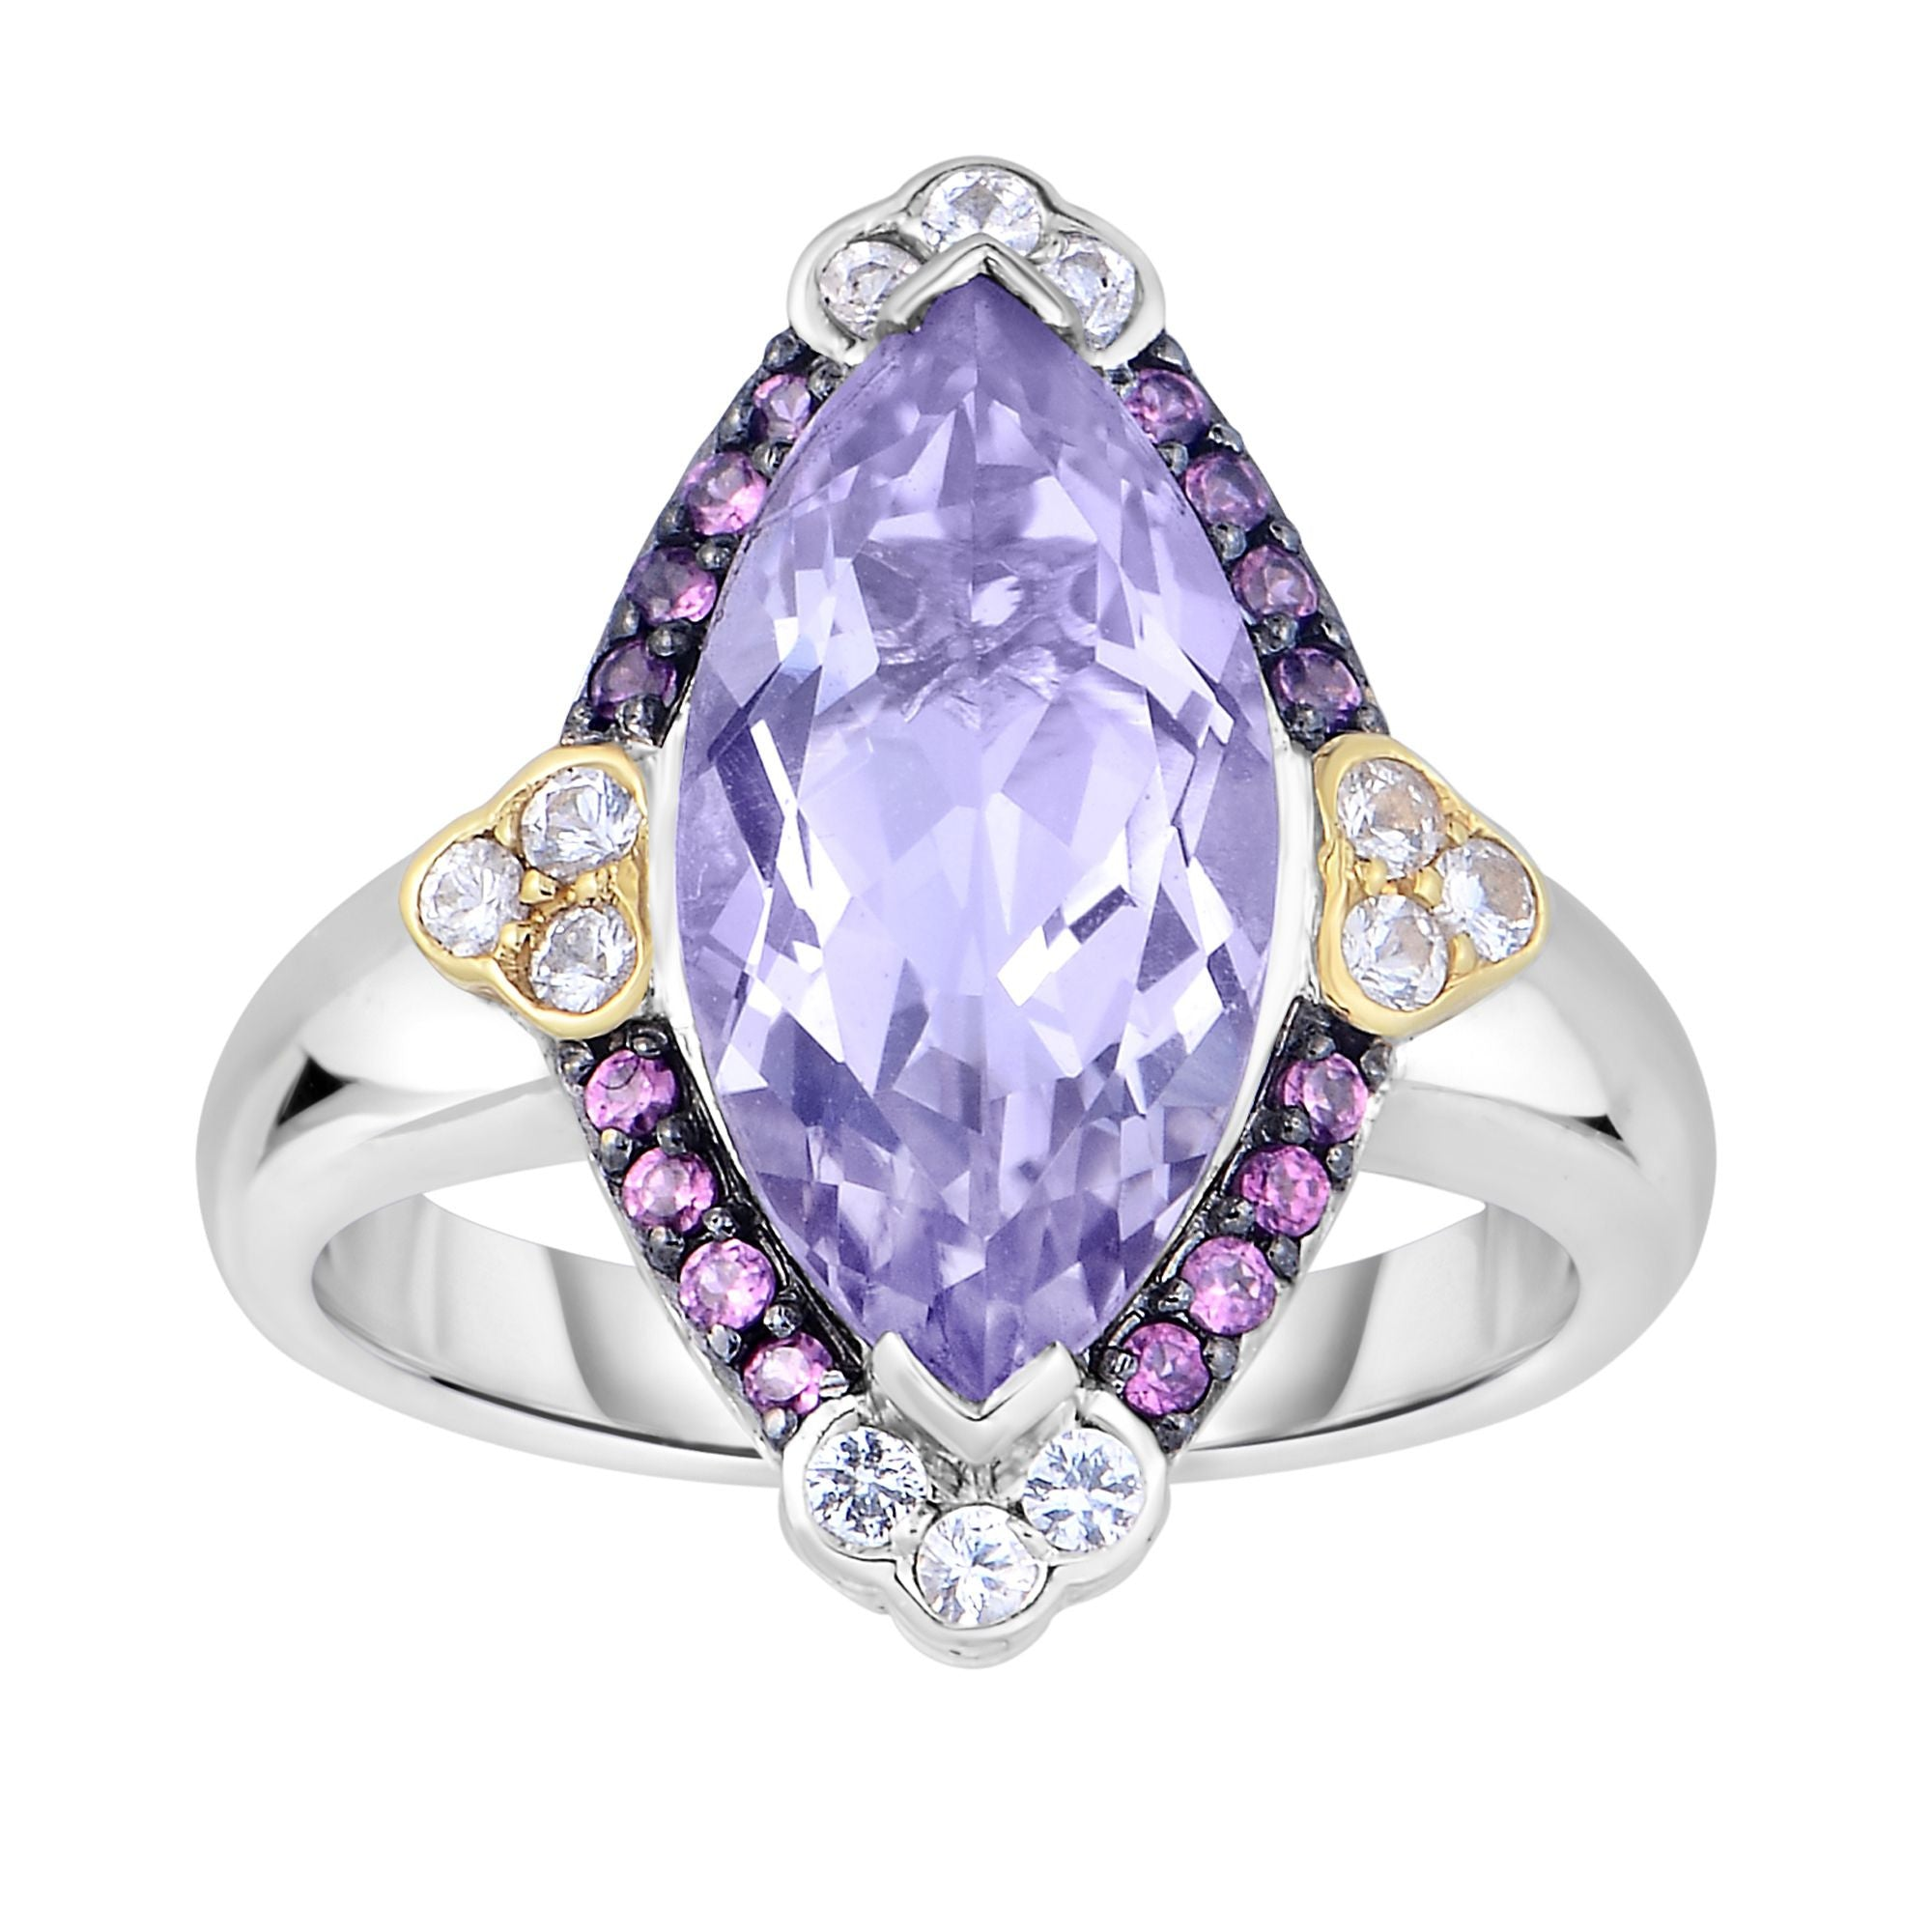 stone diamond collections engagement ring diamonds lugaro forevermark pink rings colored fancy